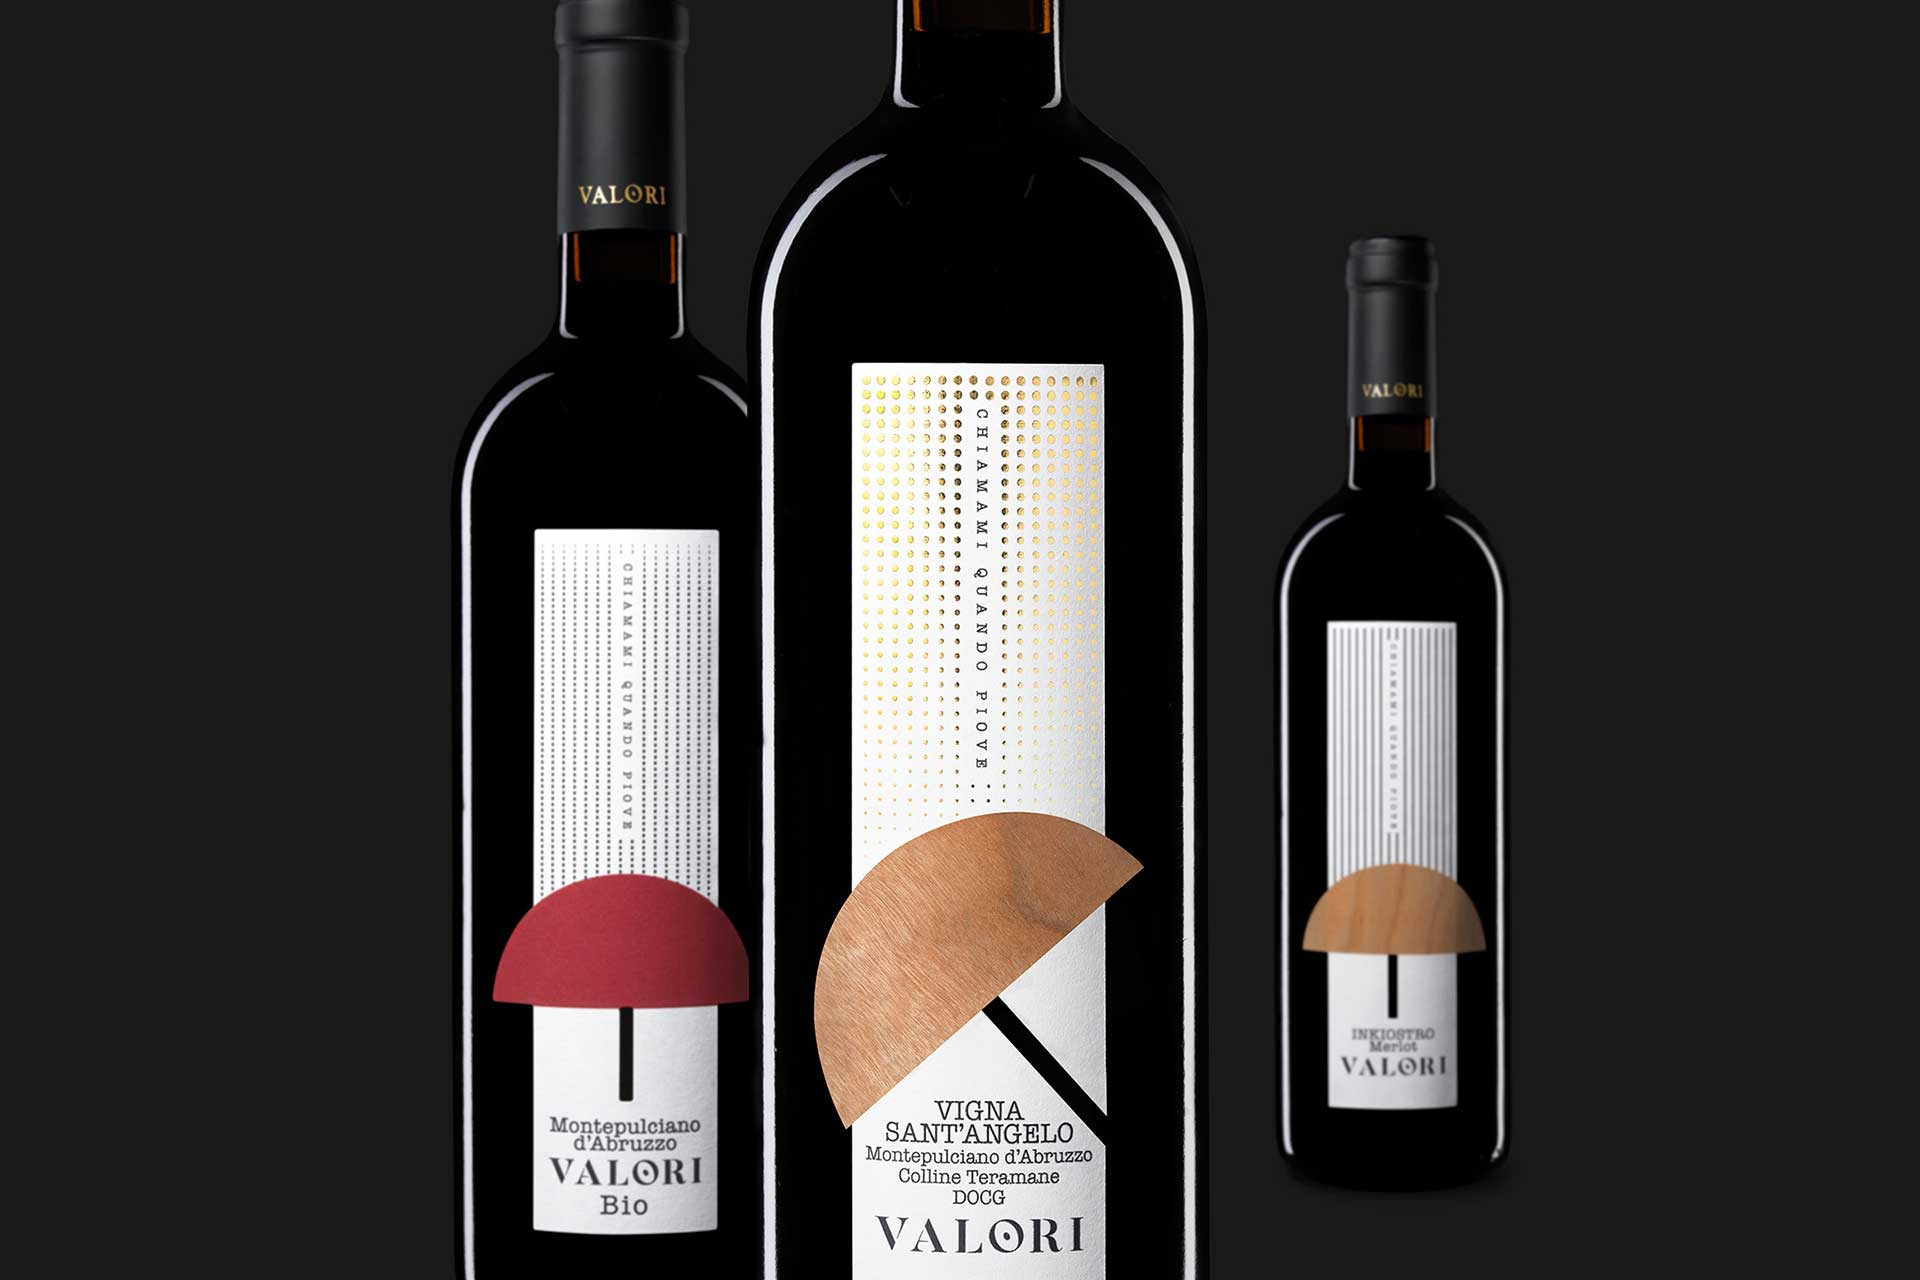 spazio-di-paolo-mario-packaging-luigi-valori-wine-label-design-10